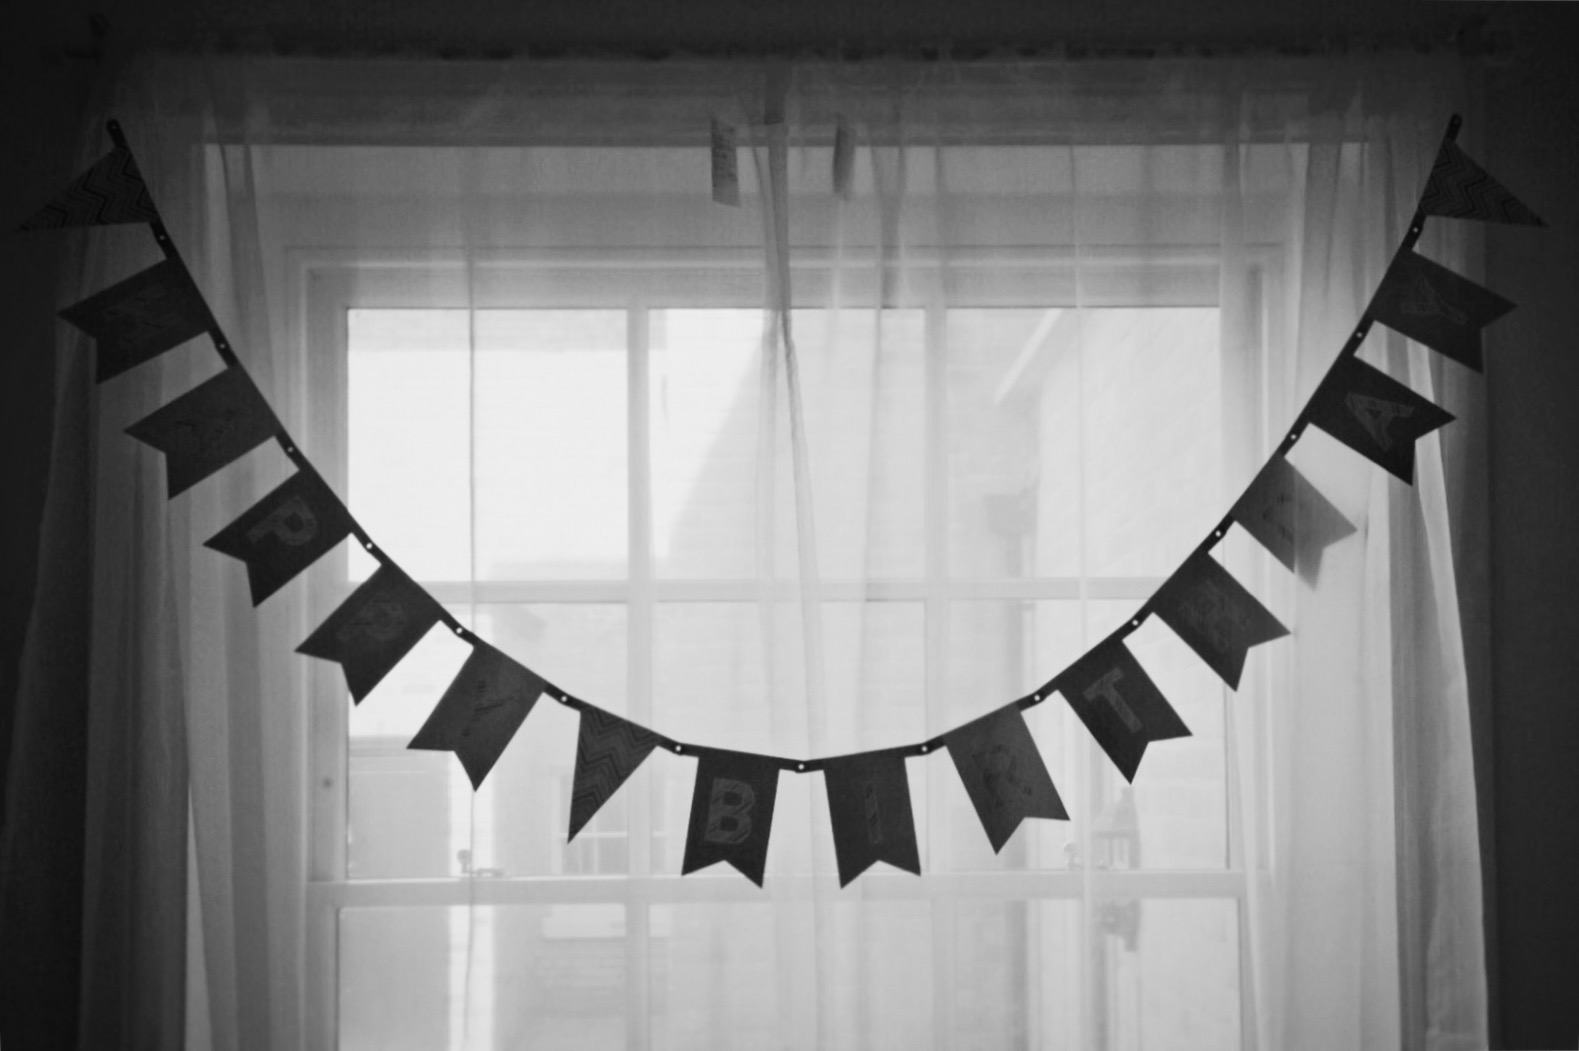 Black and white photo of 'Happy Birthday' bunting hung across a window.